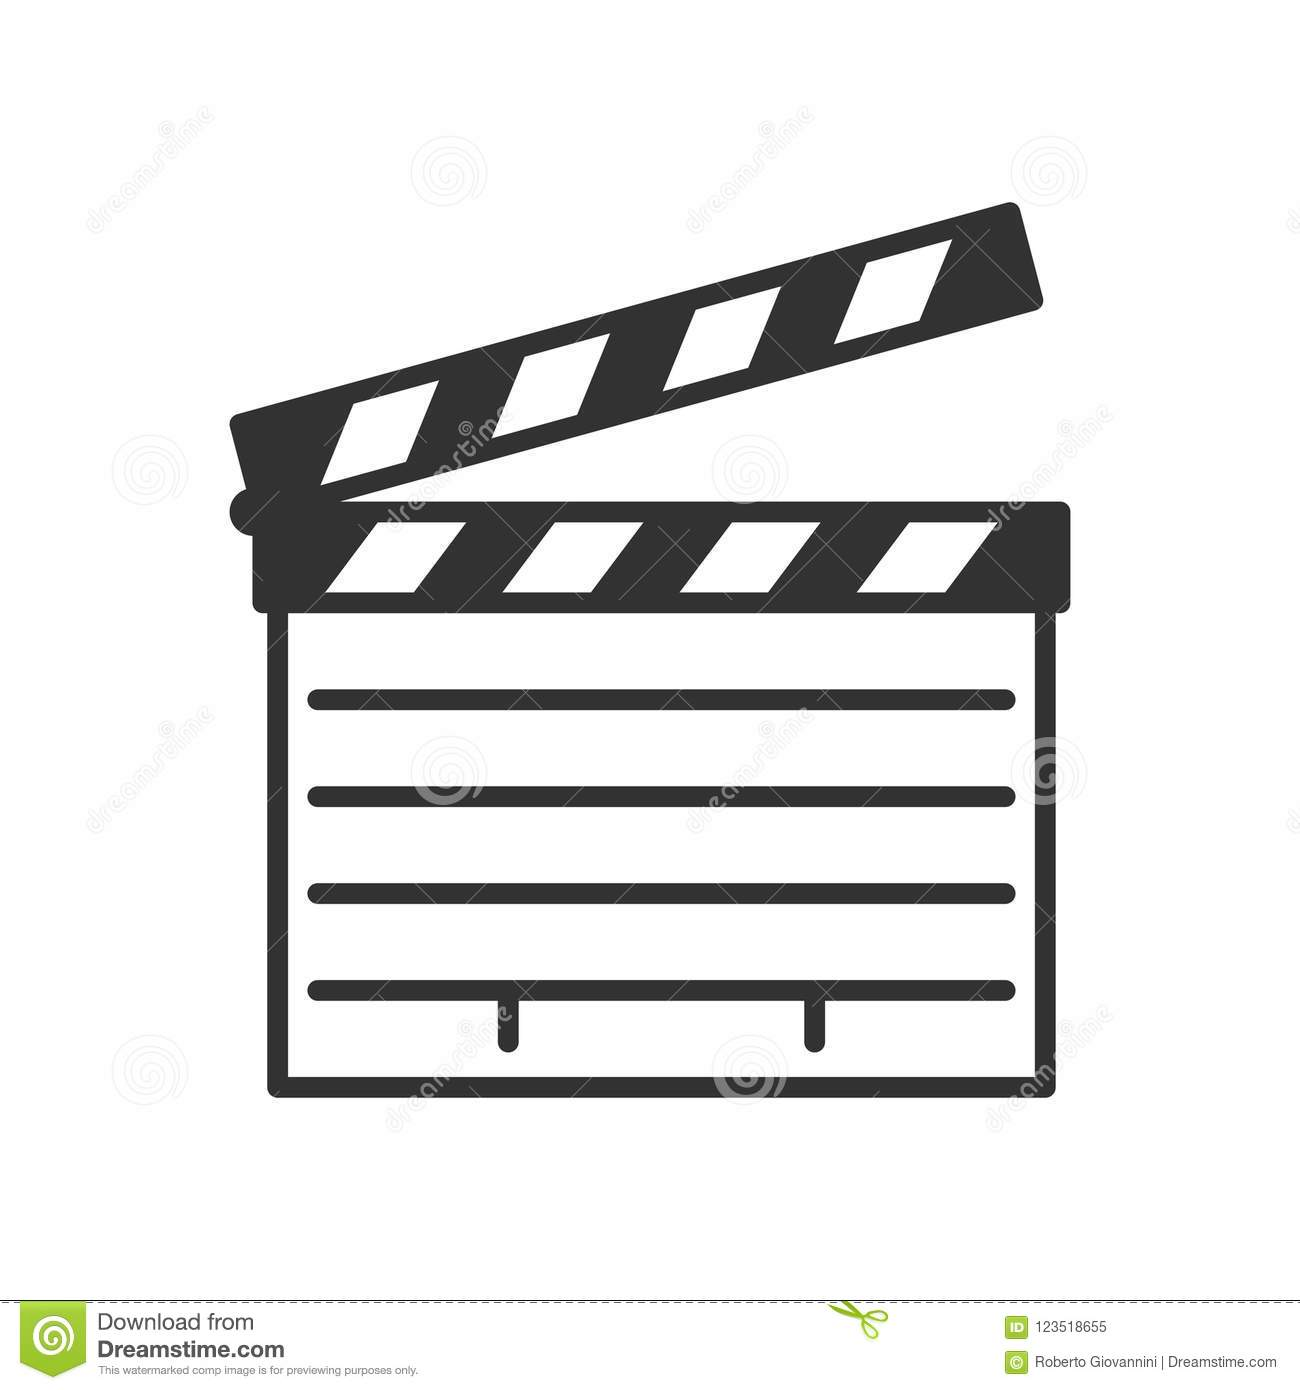 Movie Clapboard Outline Flat Icon on White